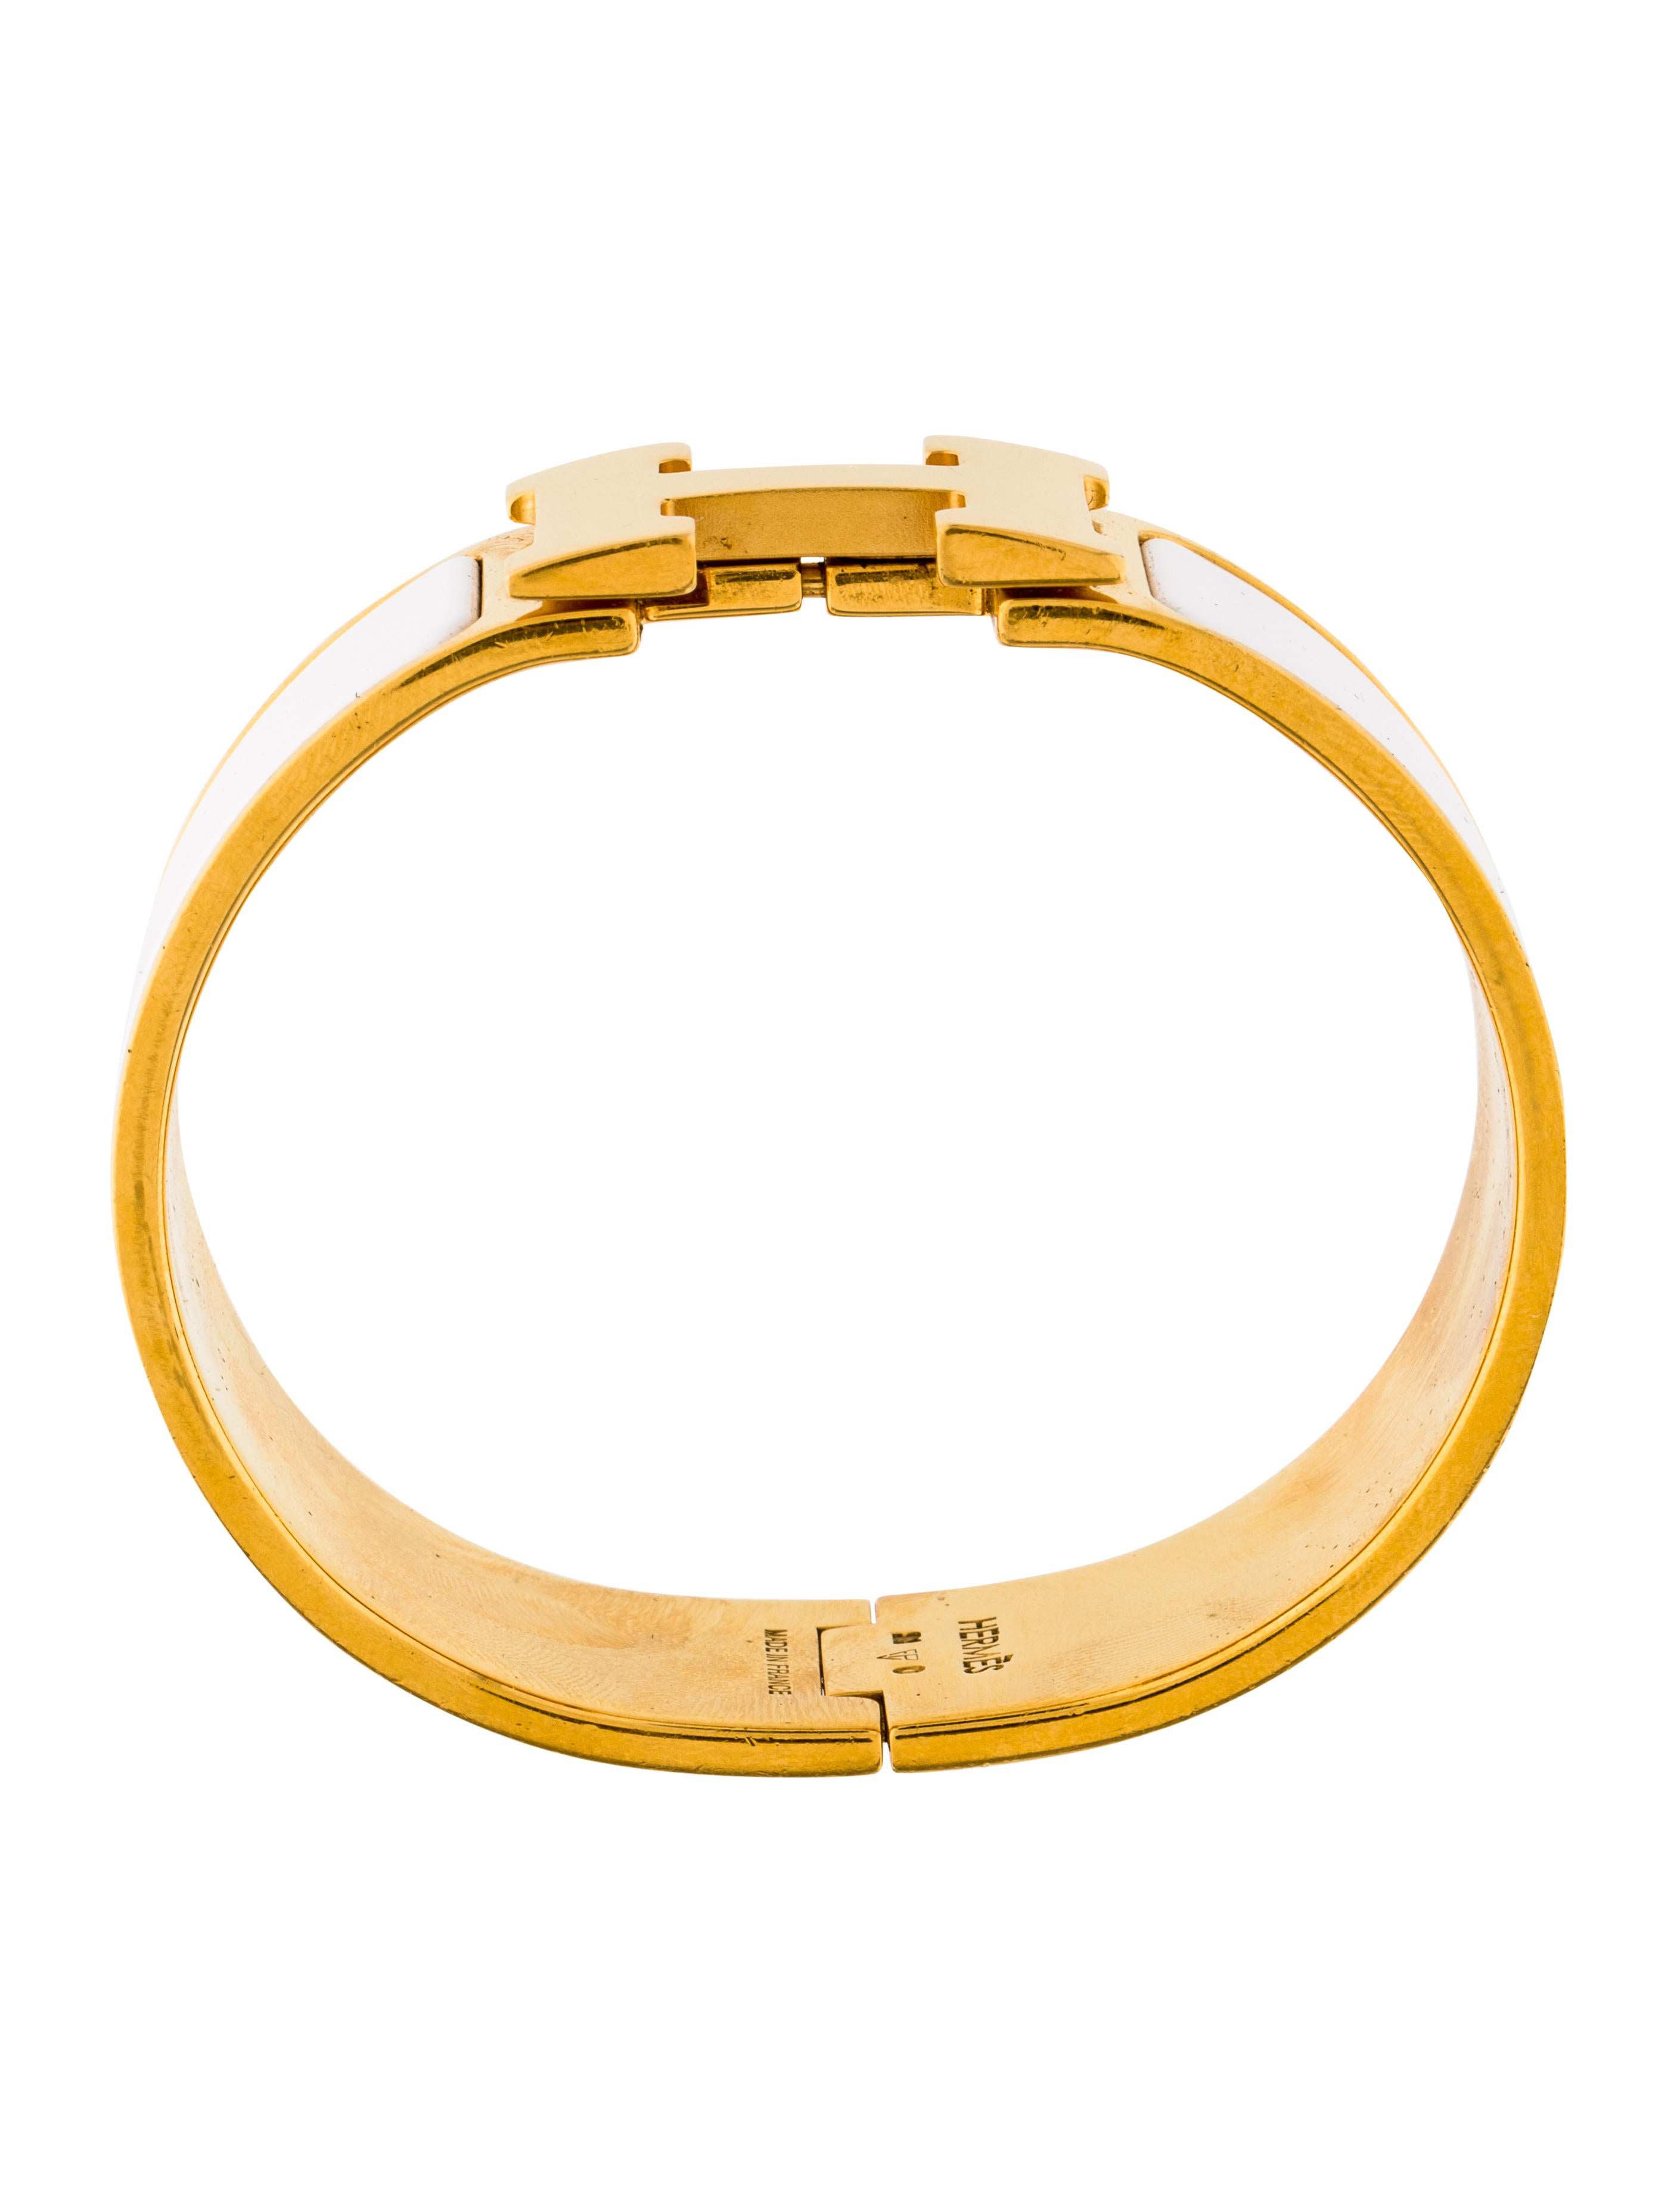 herm 232 s clic clac h bracelet bracelets her108479 the realreal